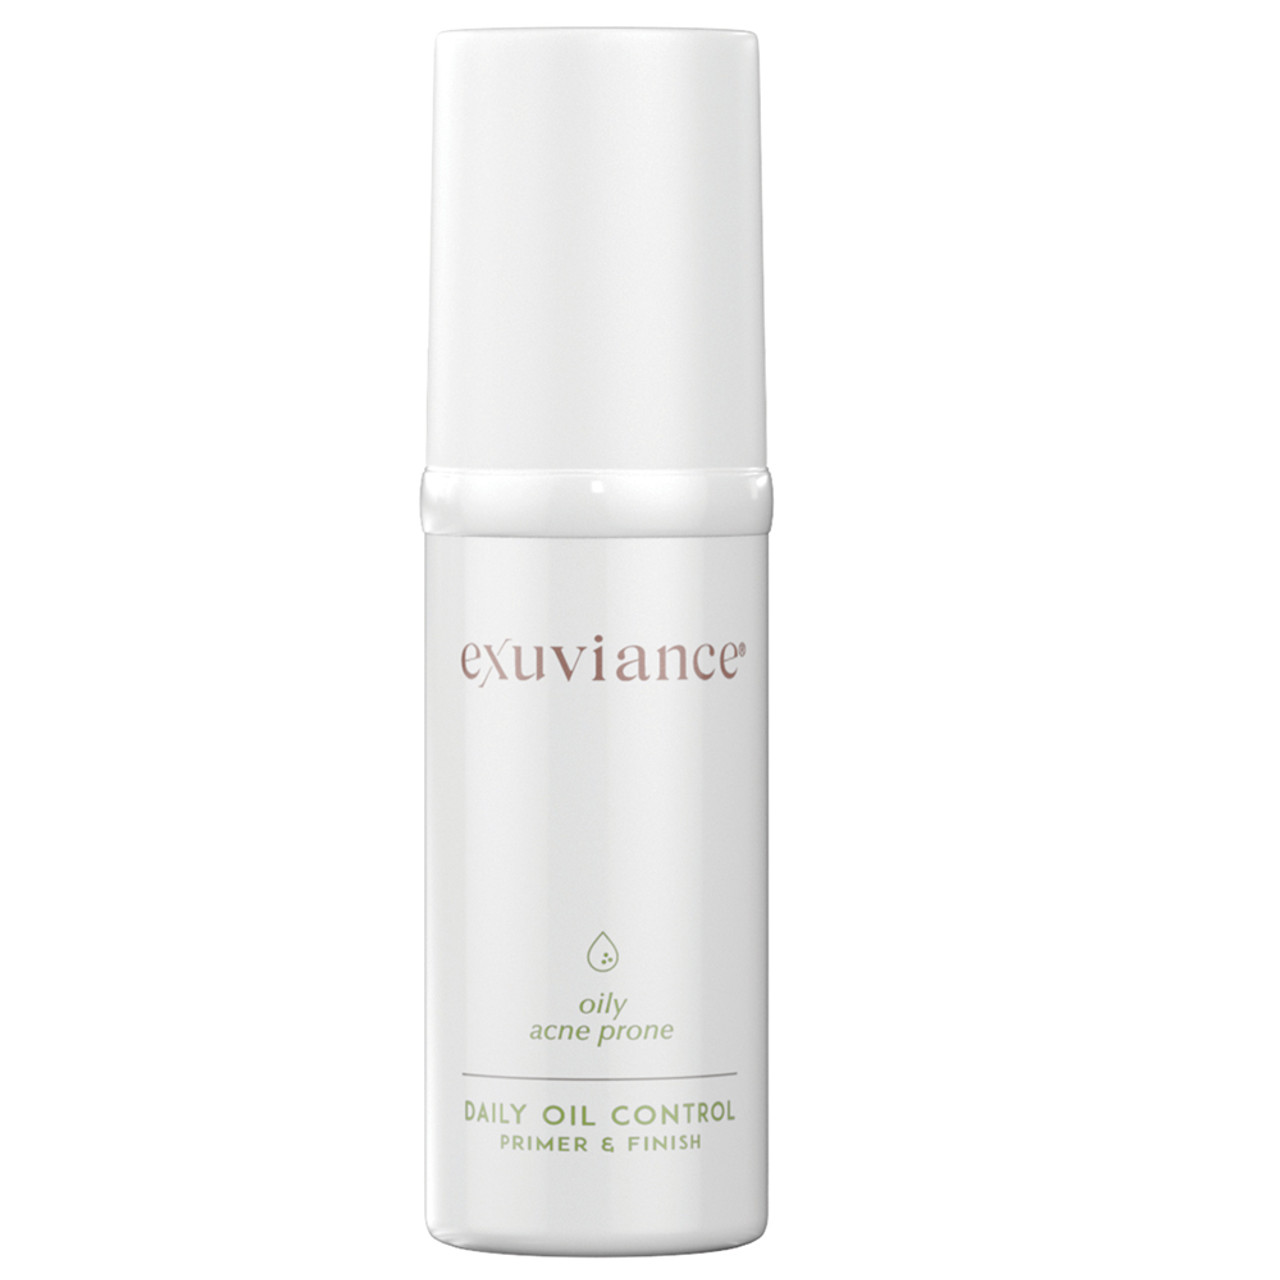 Exuviance Daily Oil Control Primer & Finish